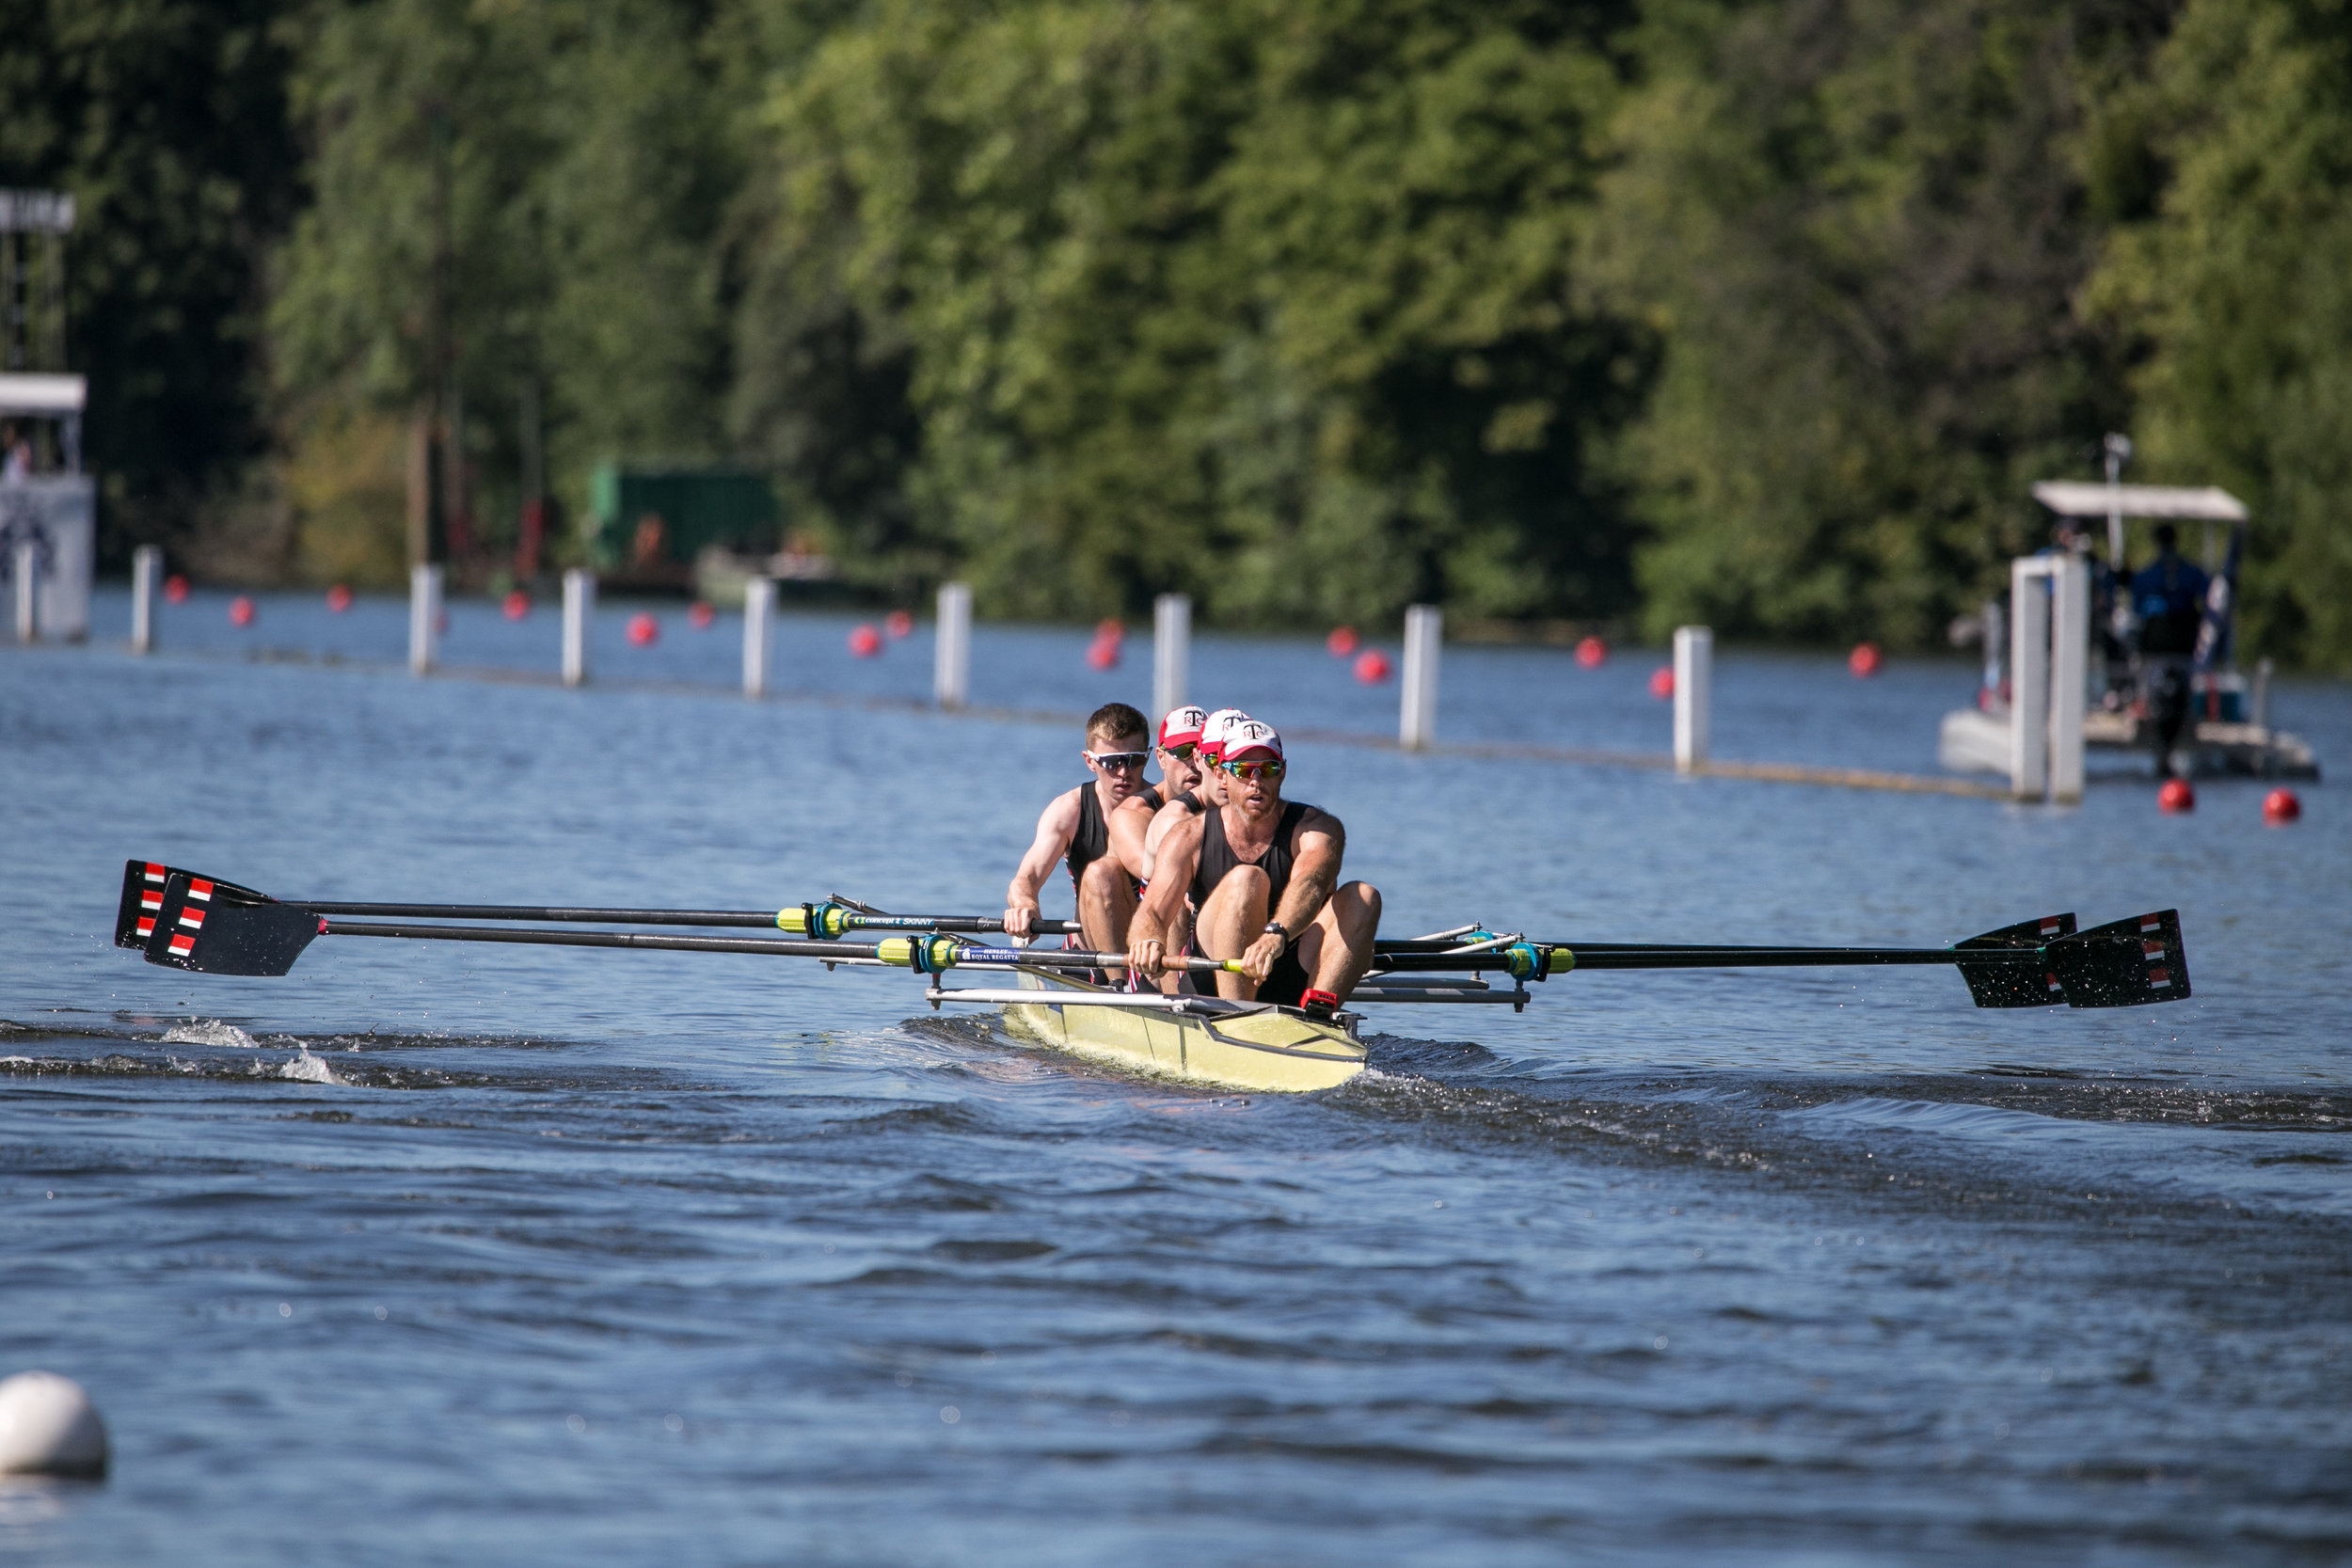 Hire boats for a race - We are occasionally able to lend boats out for races such as WEHORR, HORR, HWR or HRR. Please click here to request the use of a Thames boat.